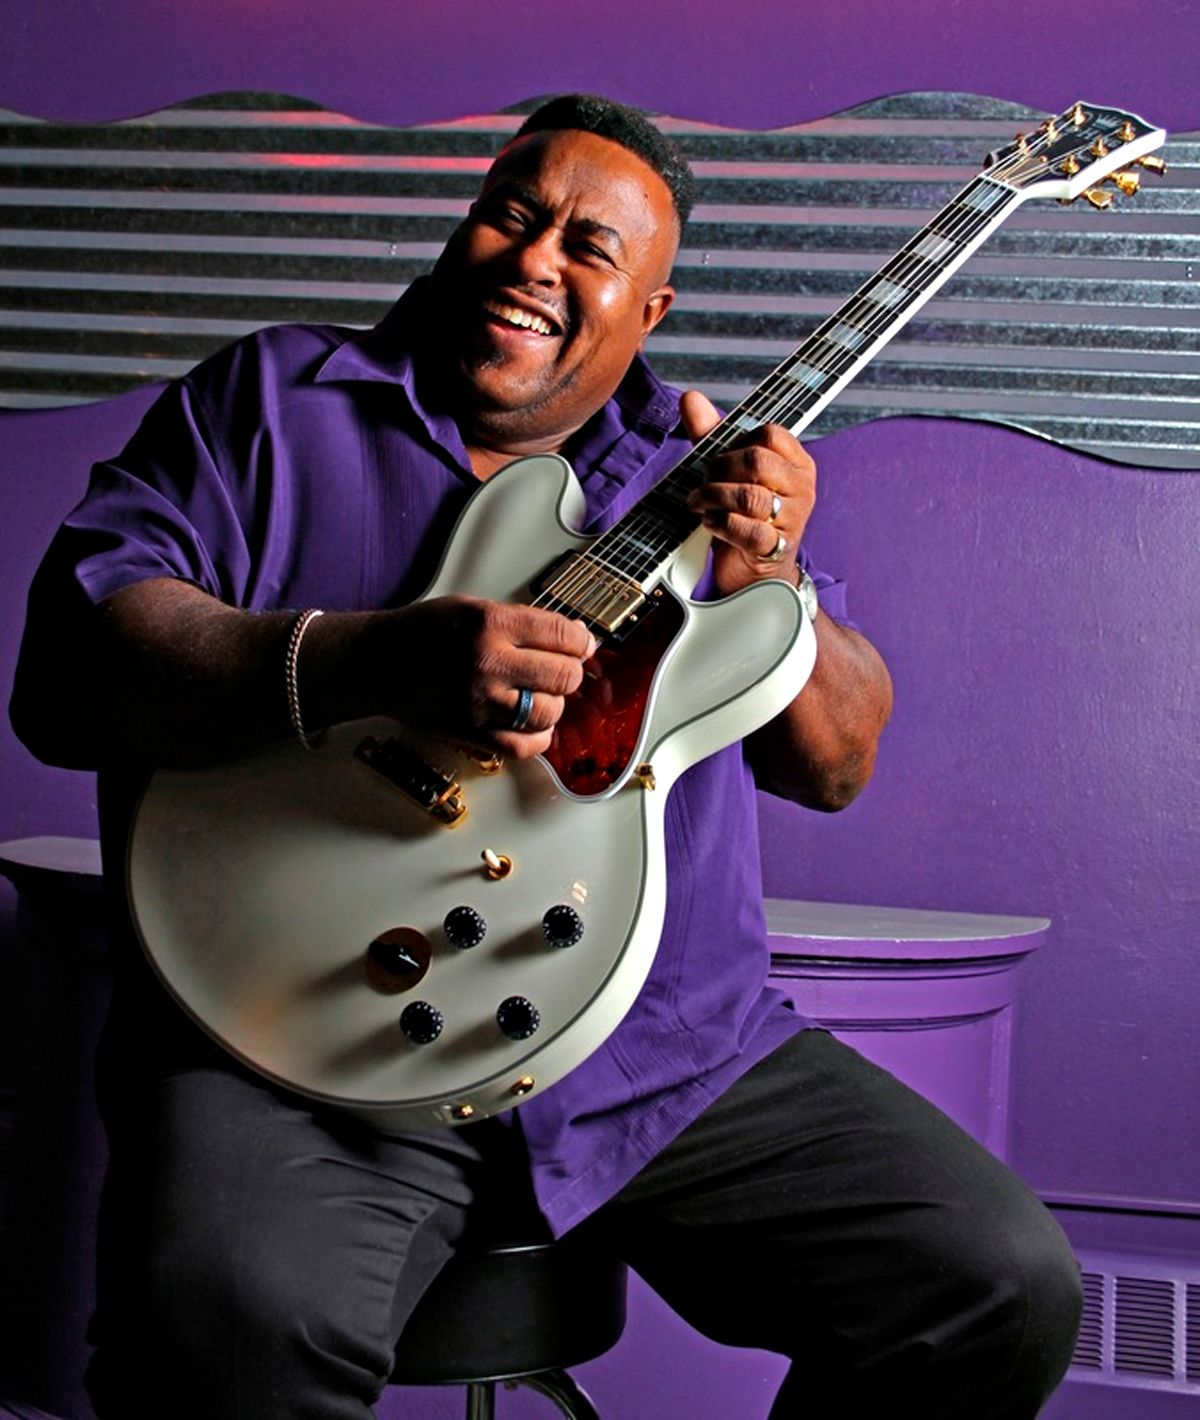 Kenlake Hot August Blues Notes The Delta Hurricane Larry Mccray Headed To Hot August Blues Festival